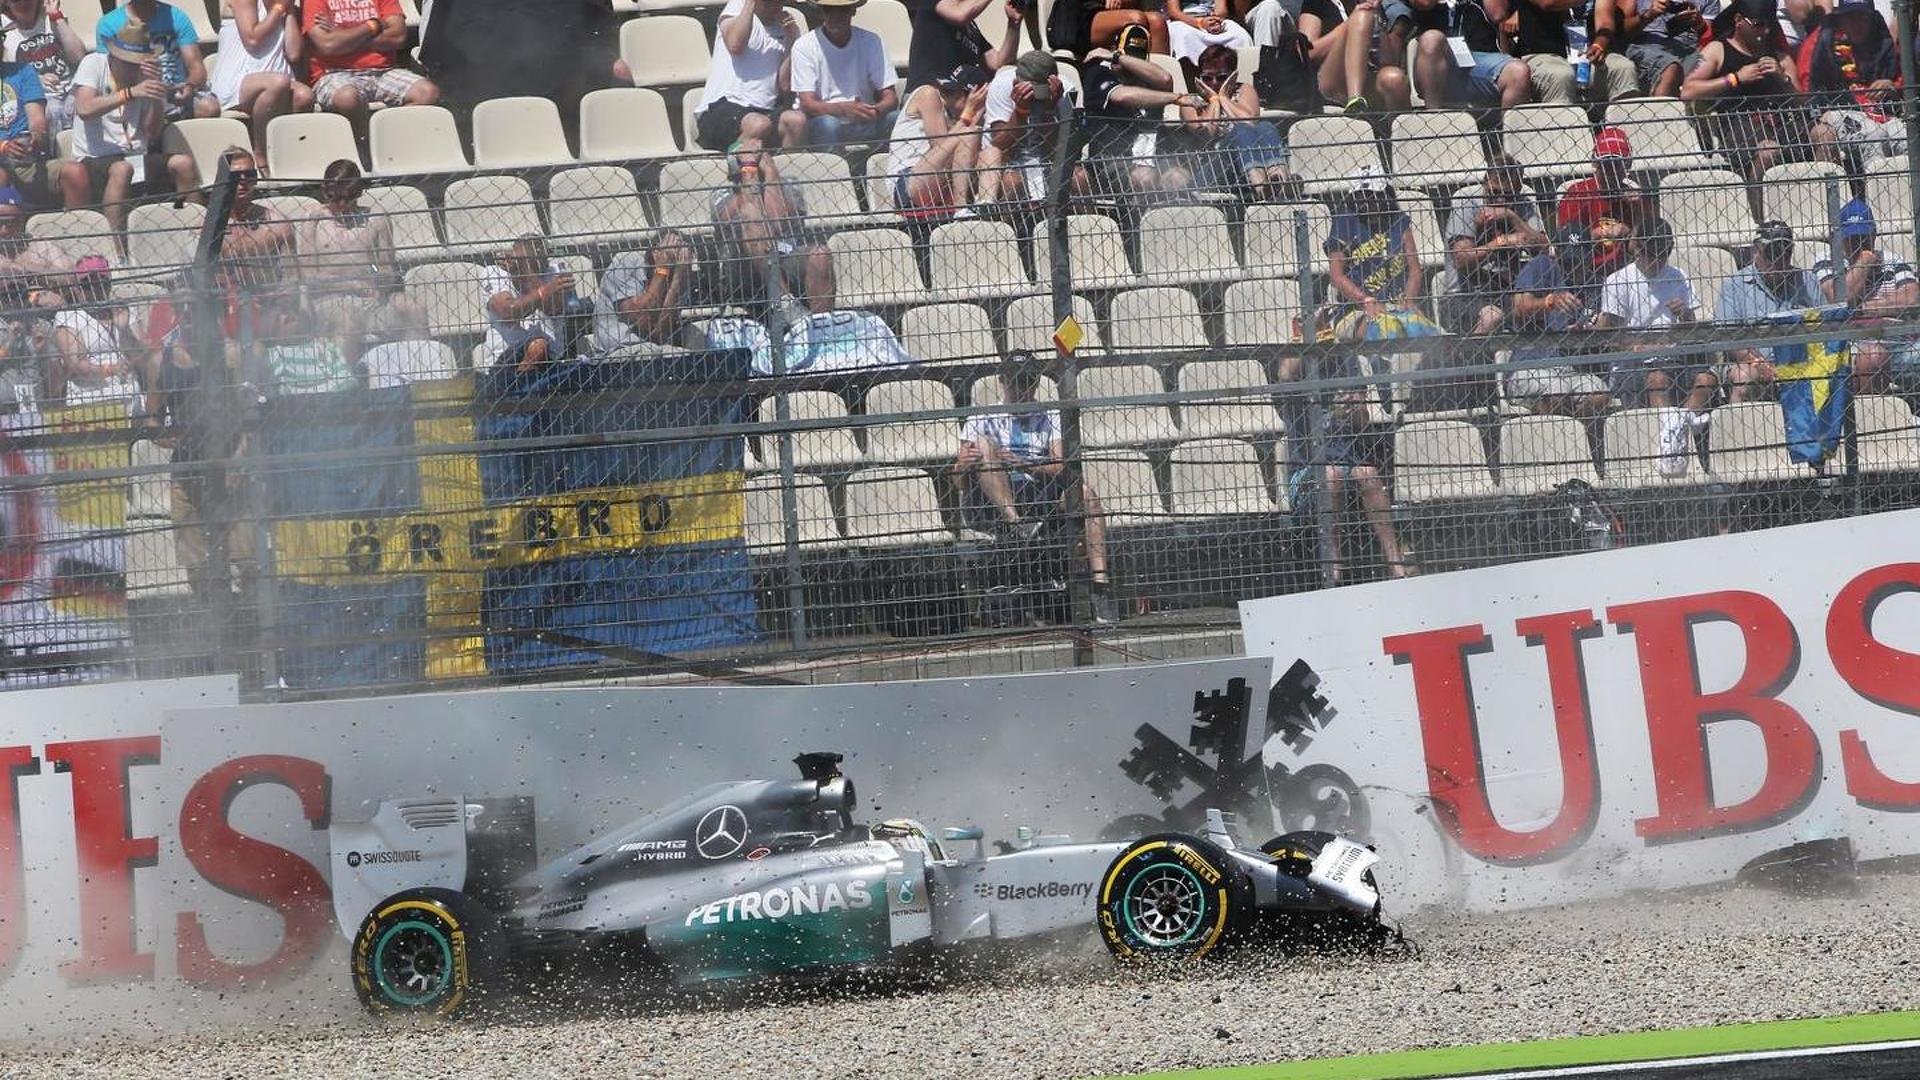 Mercedes points at disc supplier as Hamilton crashes